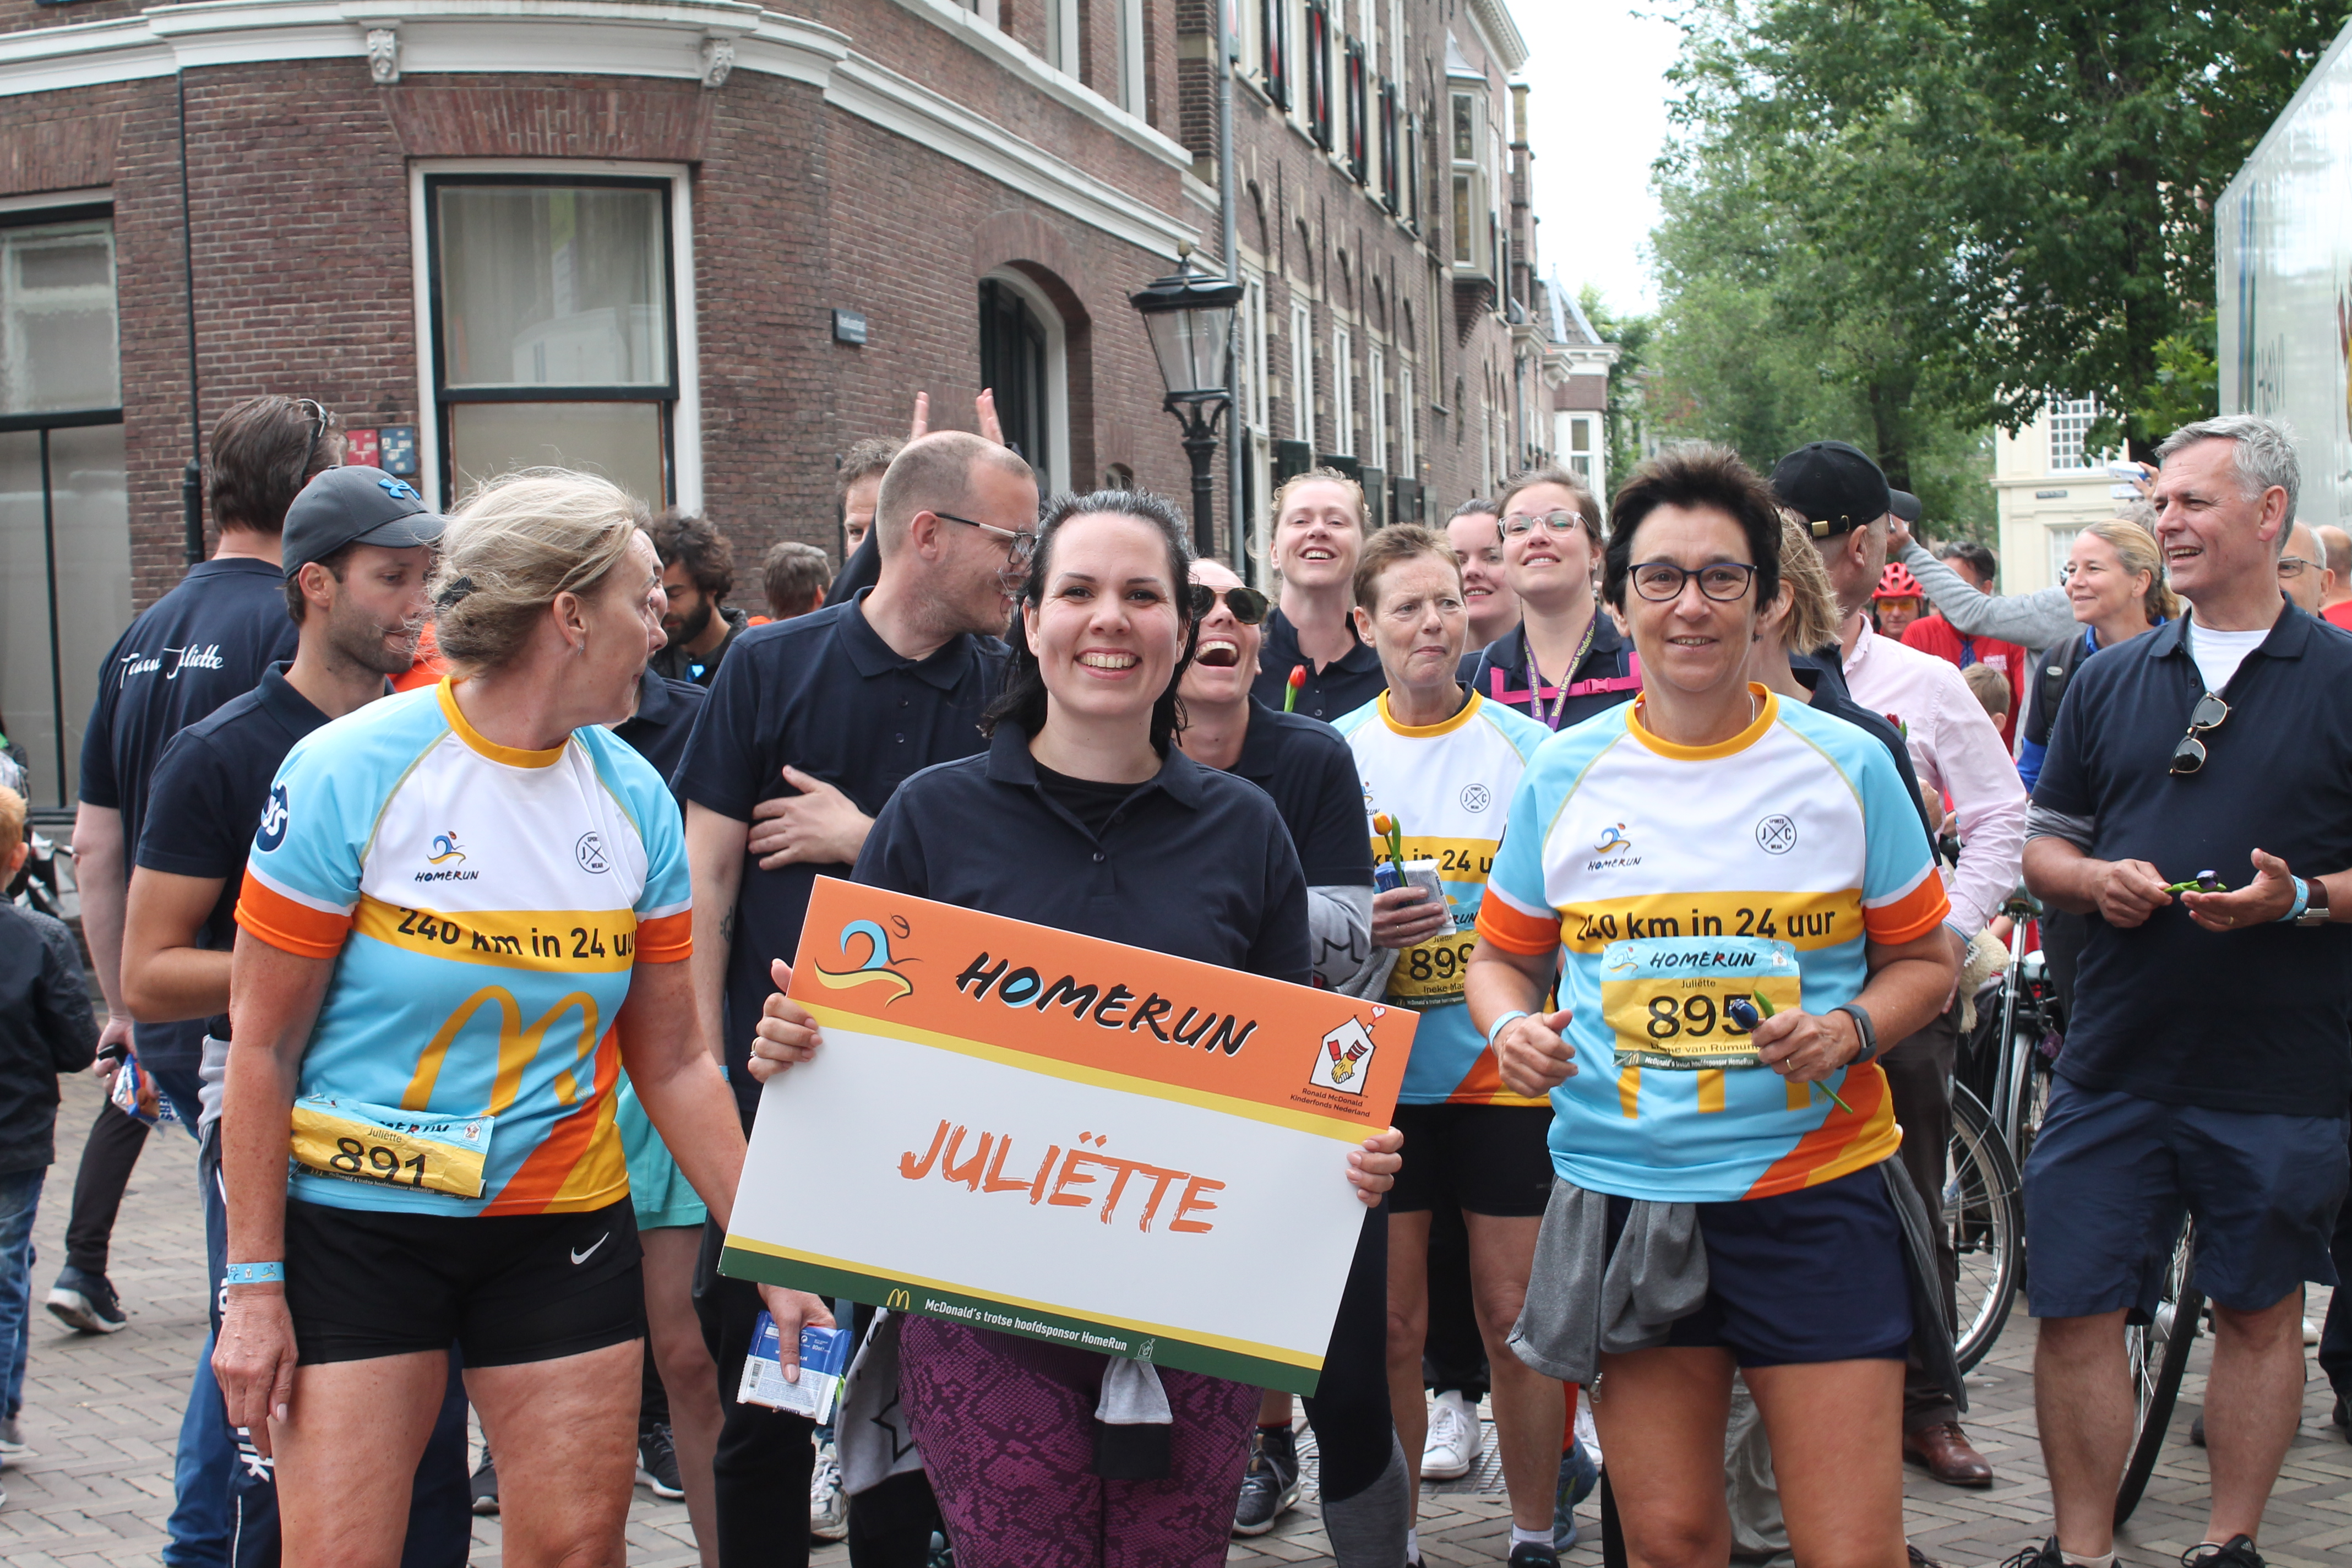 Team Juliette